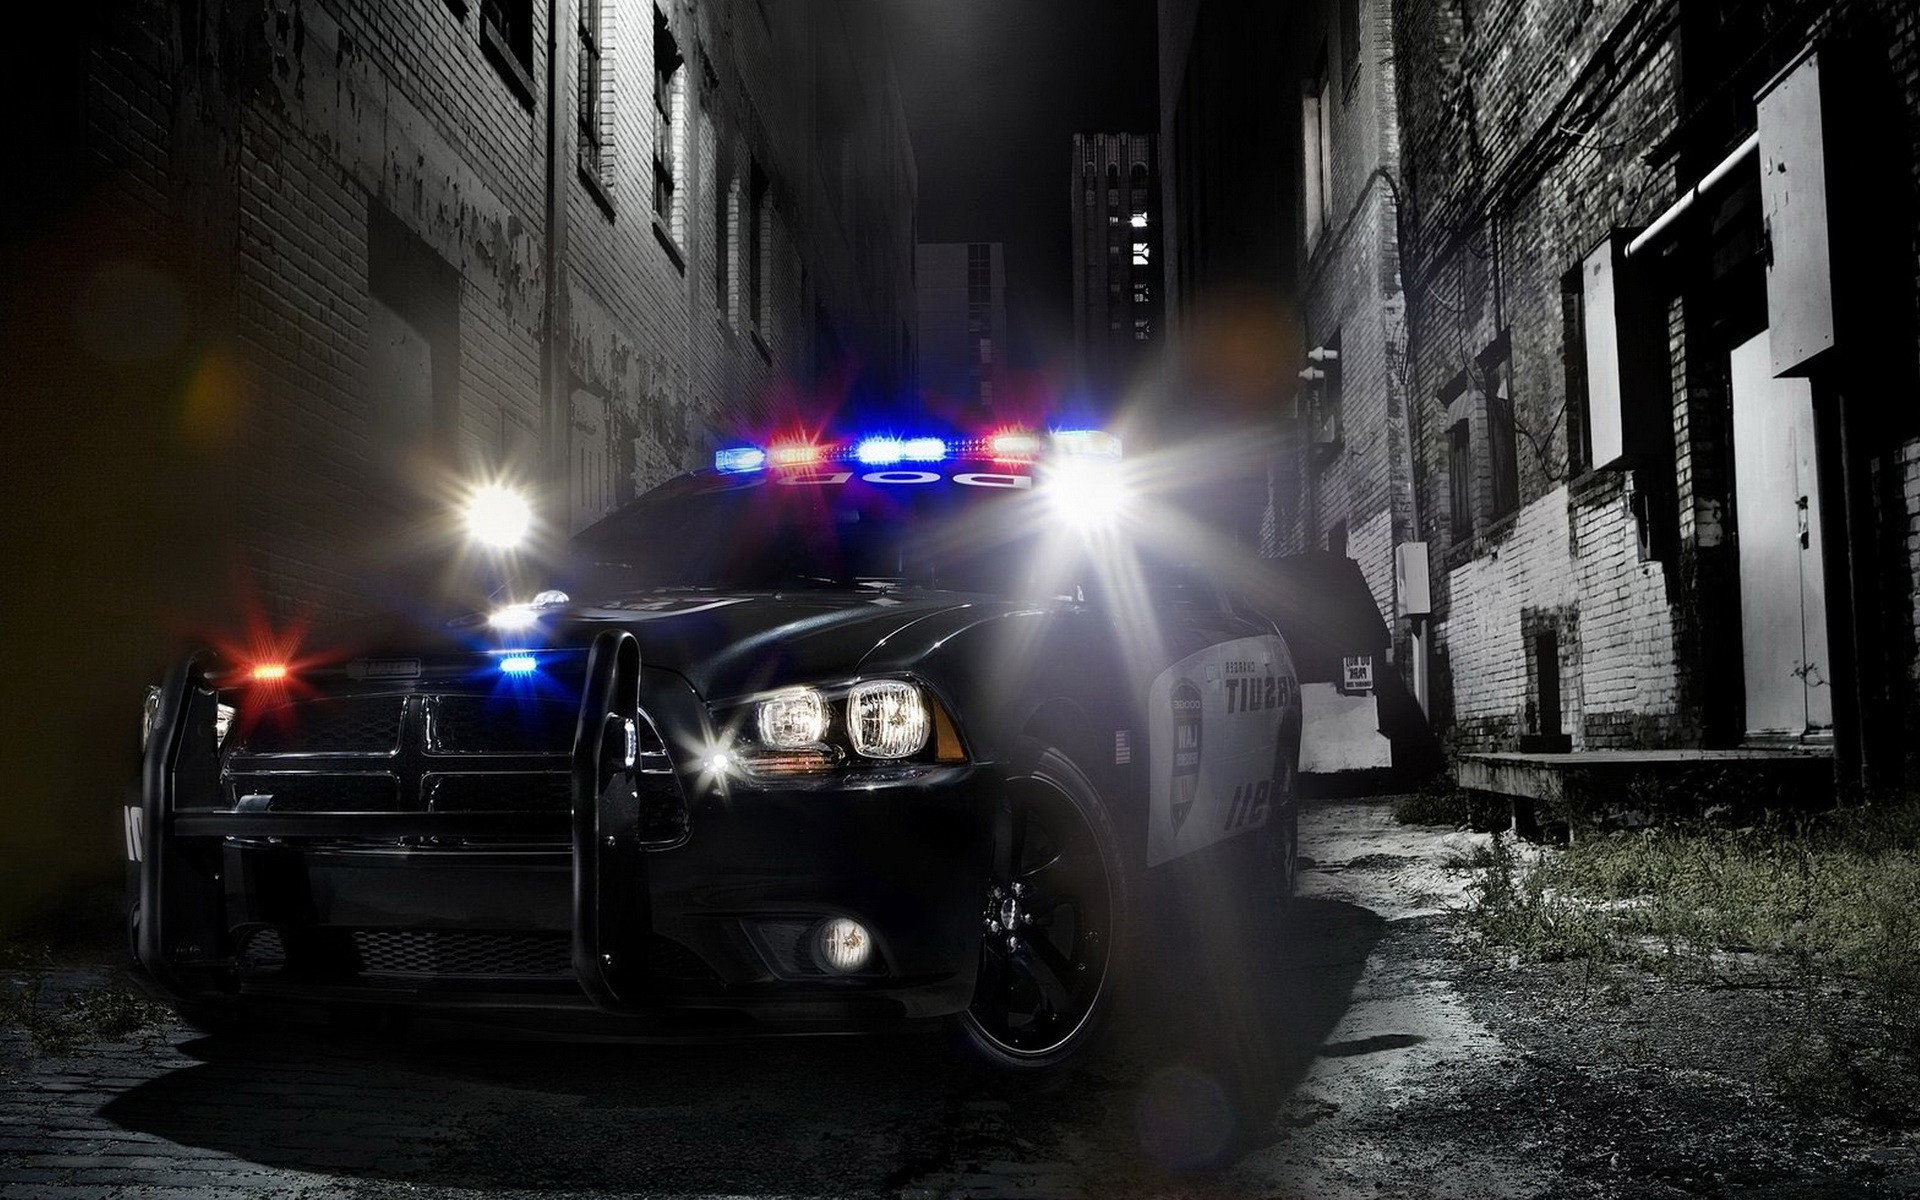 1920x1200 Police Car Wallpaper Background Hd All About Gallery Car